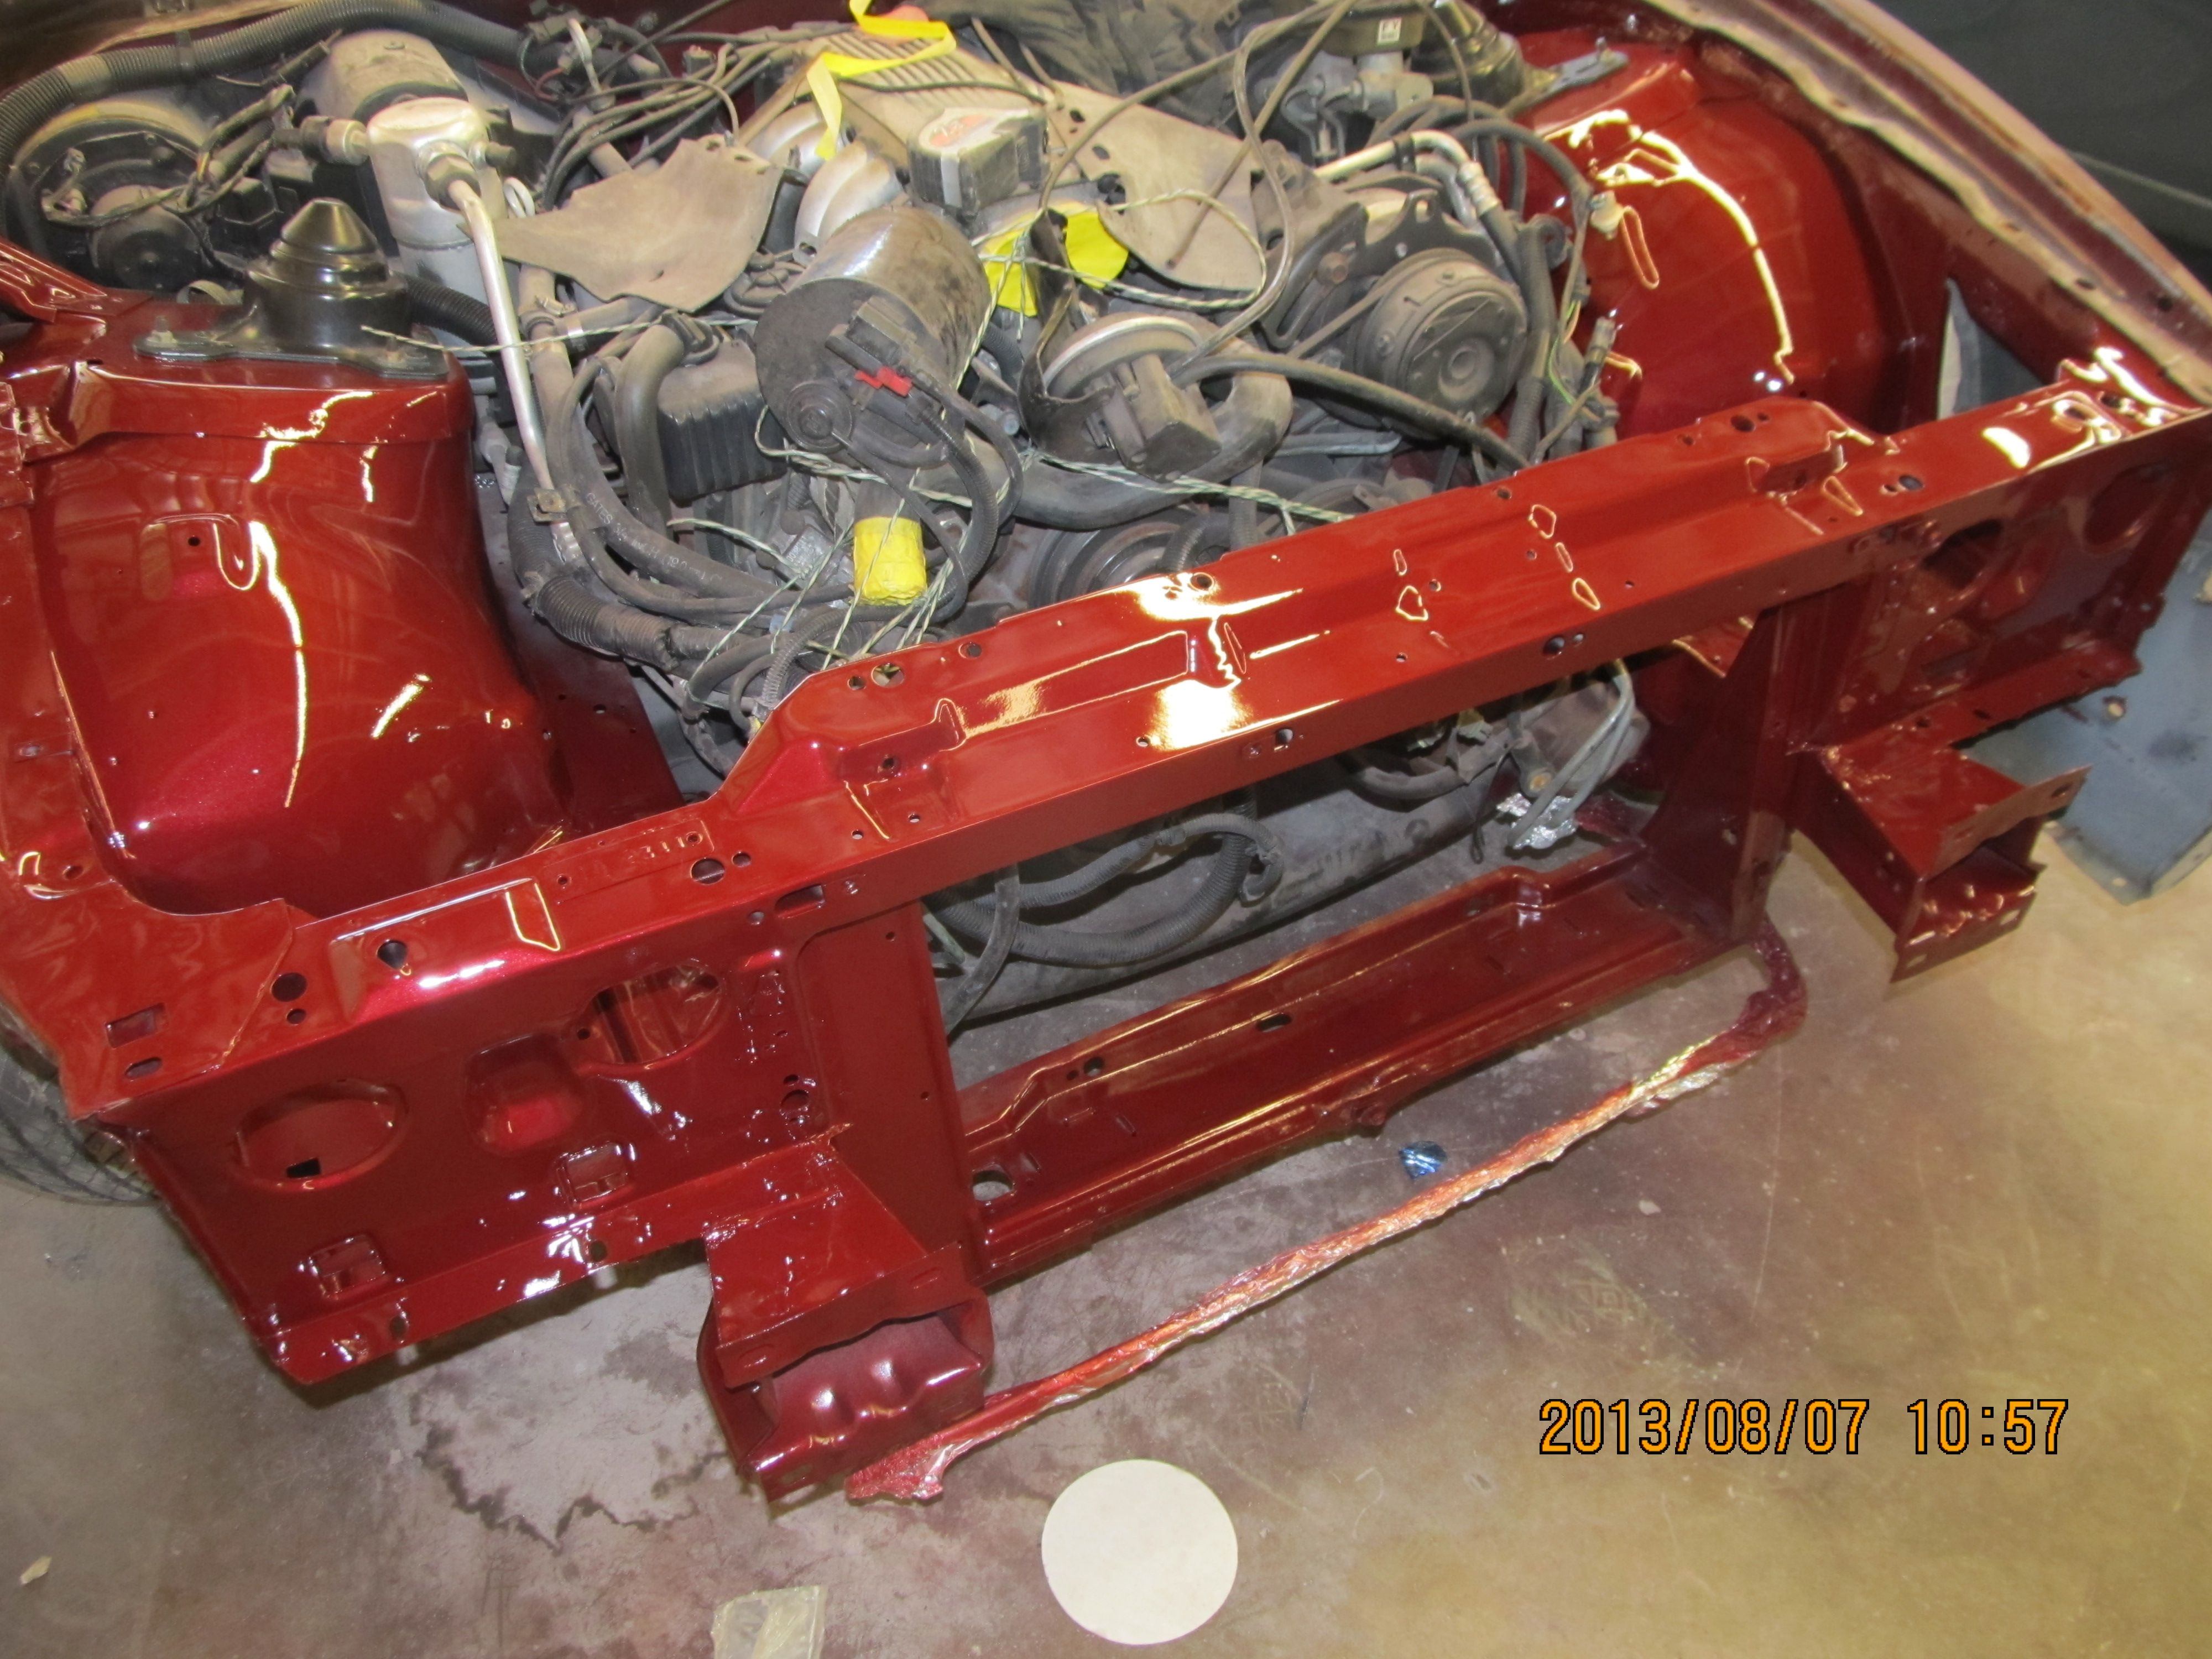 Inner Body Work Completed Now To Reassemble 1987 Trans Am Gta